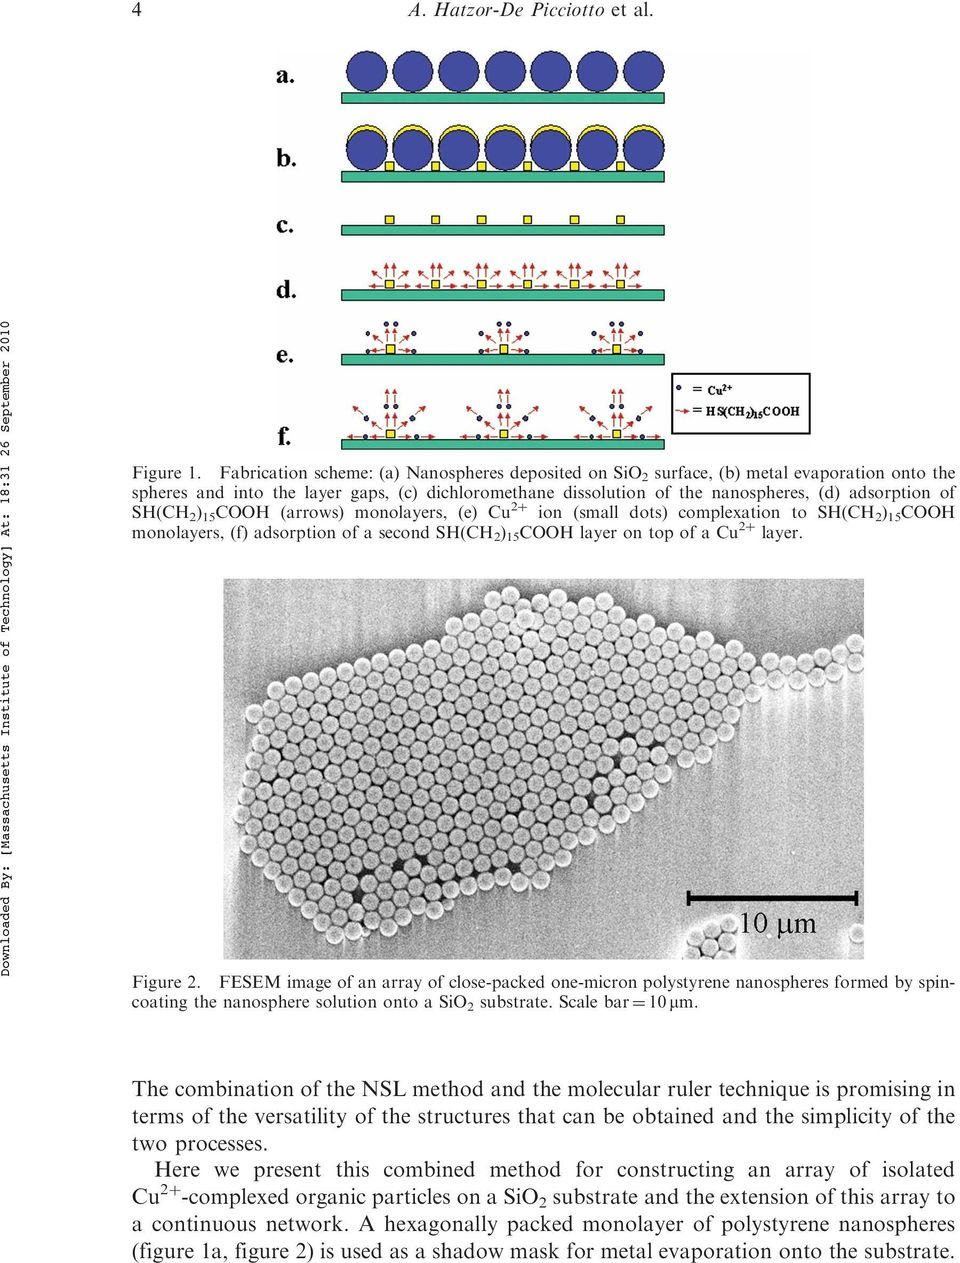 SH(CH 2 ) 15 COOH (arrows) monolayers, (e) Cu 2þ ion (small dots) complexation to SH(CH 2 ) 15 COOH monolayers, (f) adsorption of a second SH(CH 2 ) 15 COOH layer on top of a Cu 2þ layer. Figure 2.